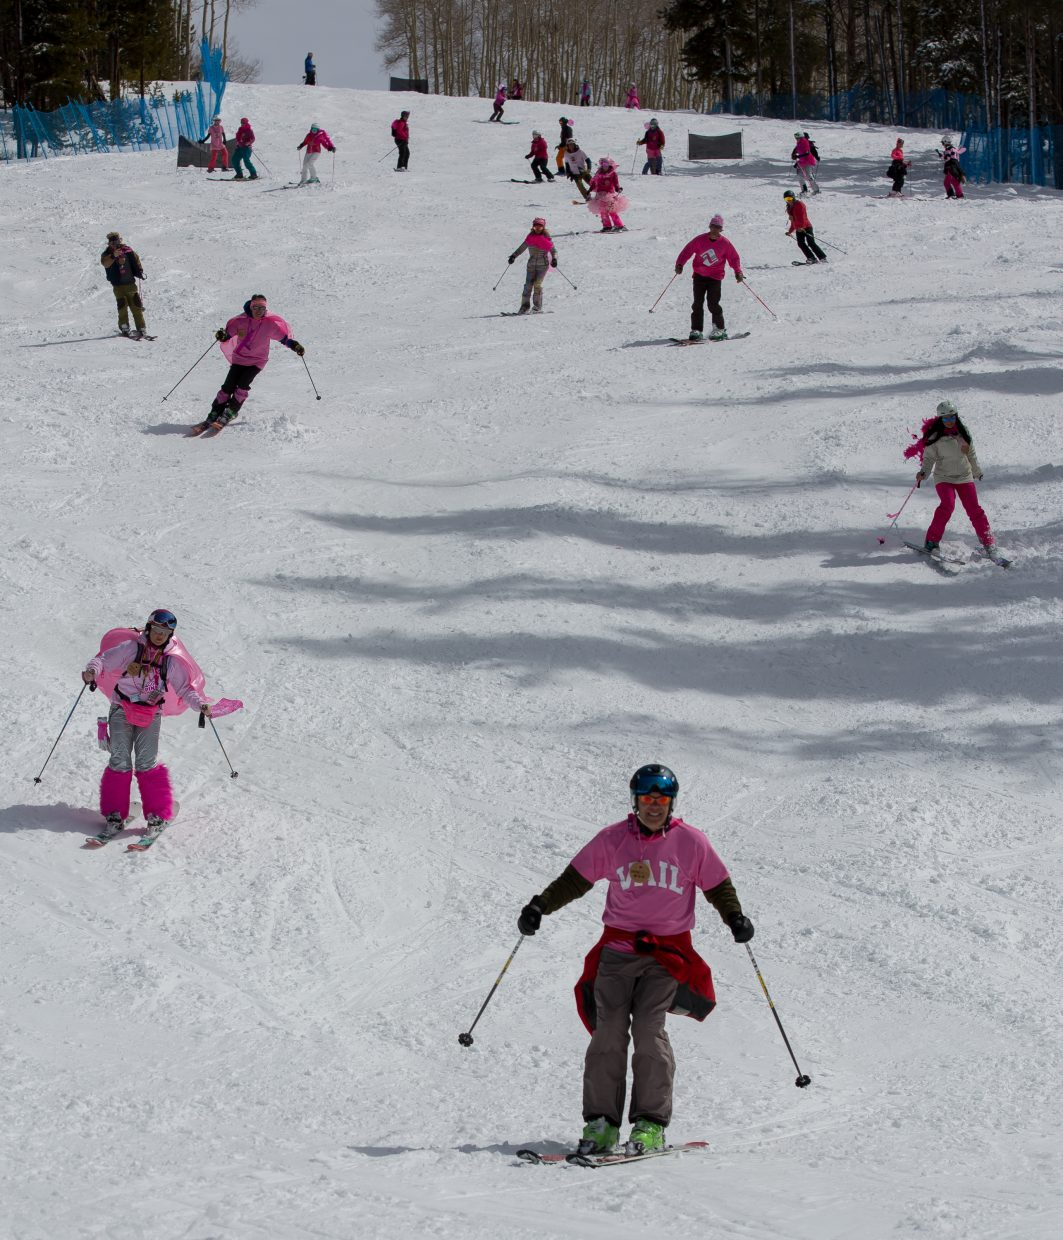 Pink Vail started with the color associated with breast cancer awareness, but funds raised benefit all patients at Shaw Cancer Center.